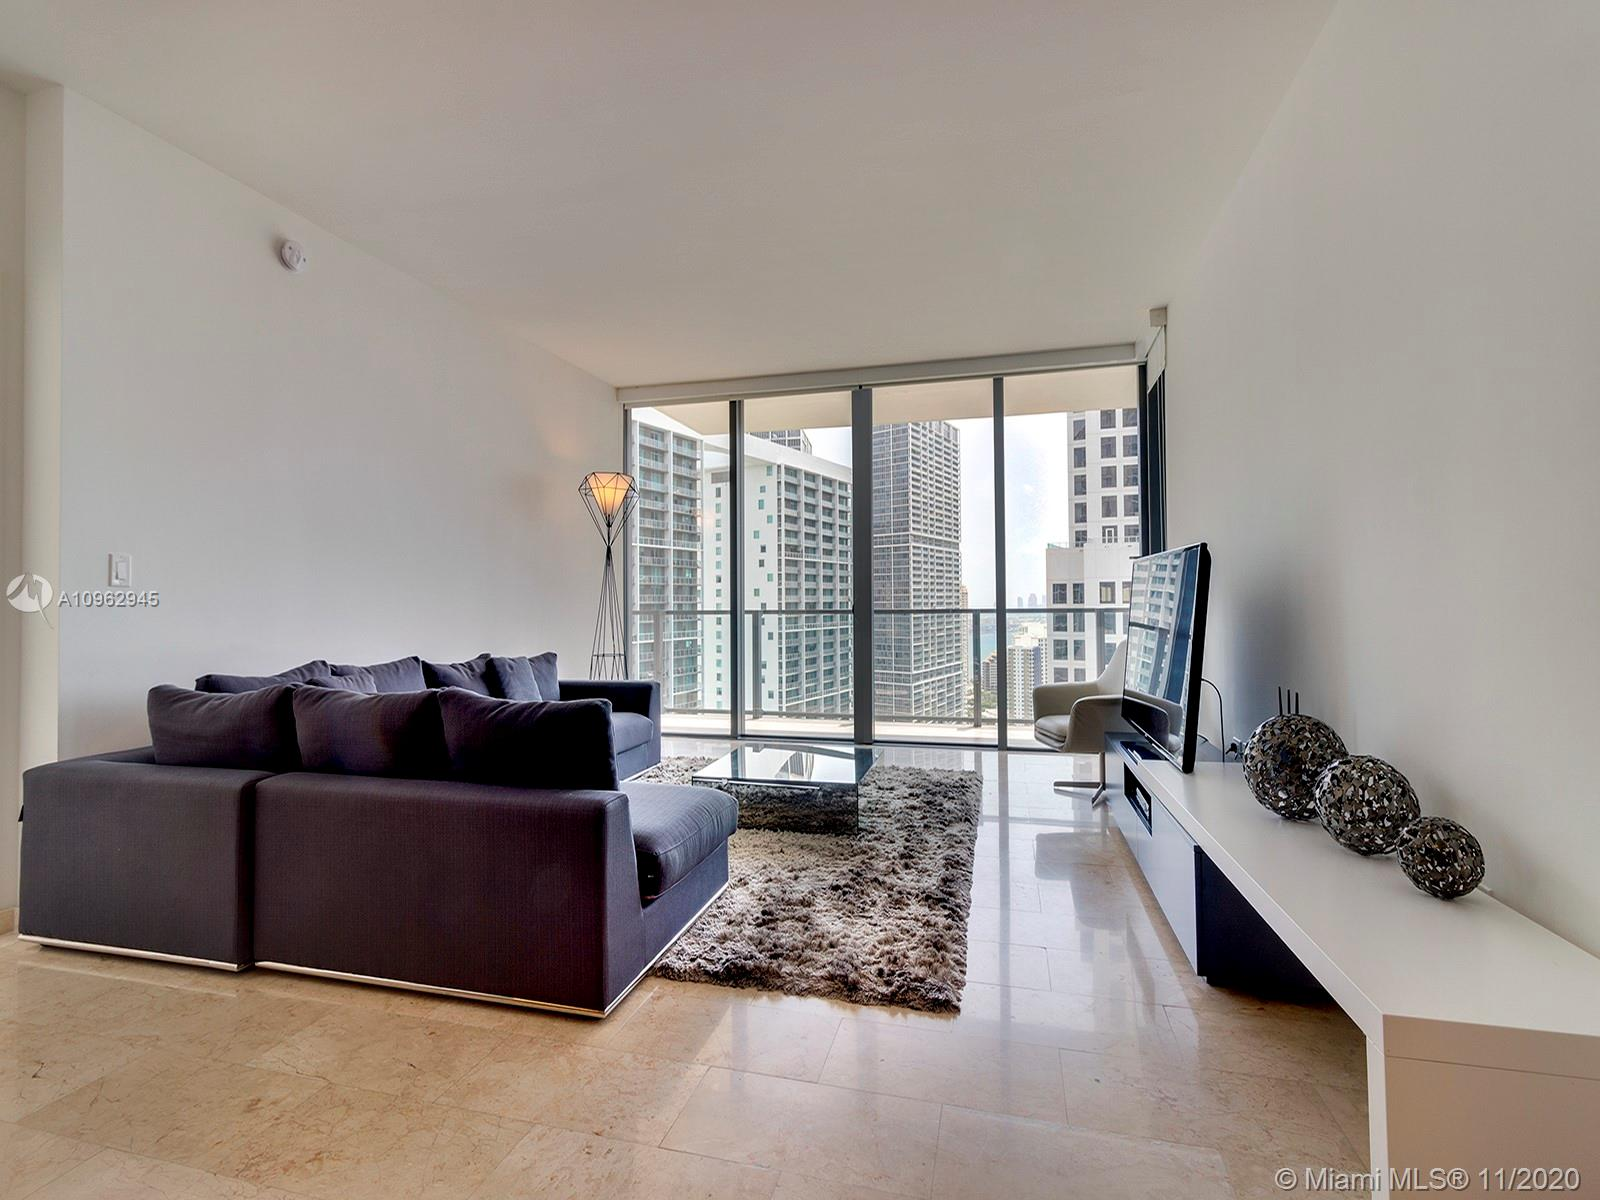 Rarely available 03 line residence with 3 beds + den and 3.5 baths with 1,891 SQFR of living space. Offered turn-key with contemporary furnishings, marble floors, spacious balcony, floor to ceiling windows, dynamic city views and direct access to Brickell City Center's shops and fine dining. Reach offers concierge, security, valet, full service spa with hamman, fitness center, indoor/outdoor children's play area, 2 pools & party room with gourmet kitchen.